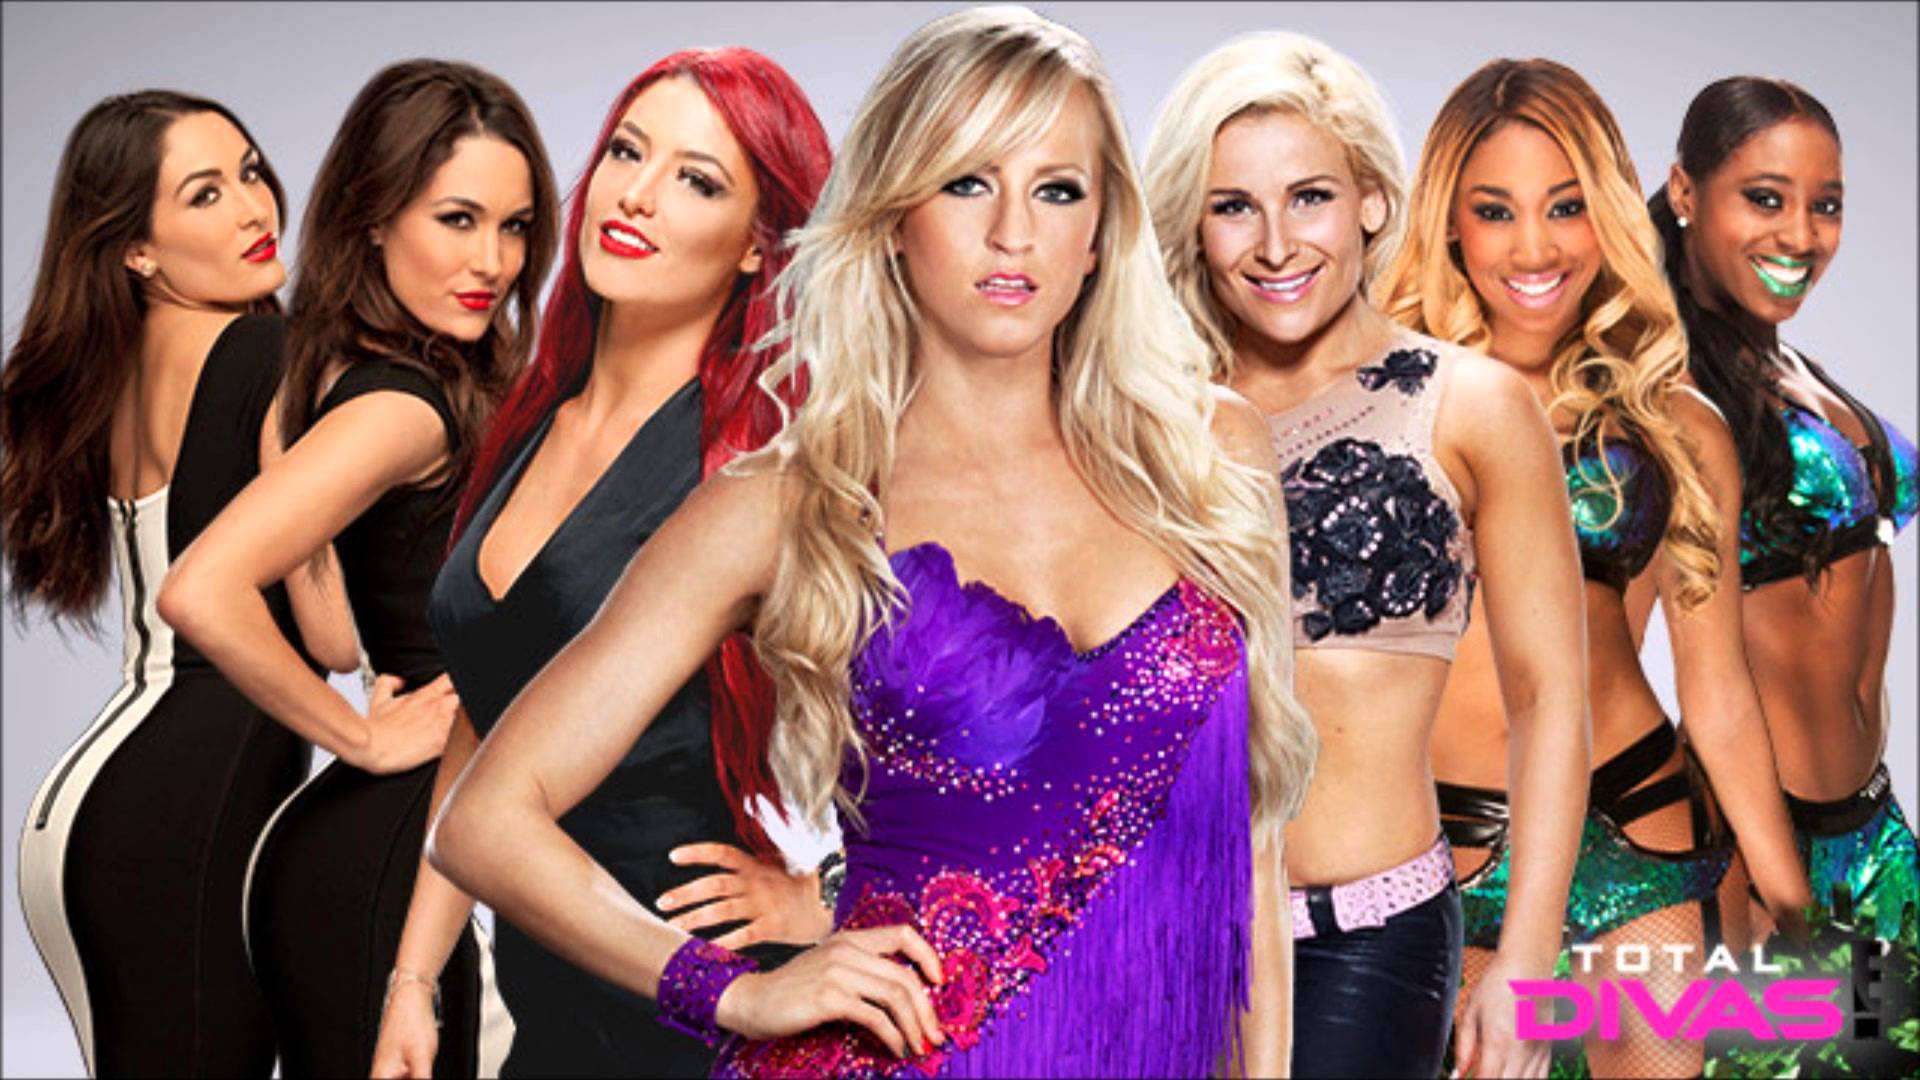 Wwe total divas wallpaper wallpapersafari - Wwe divas wallpapers ...